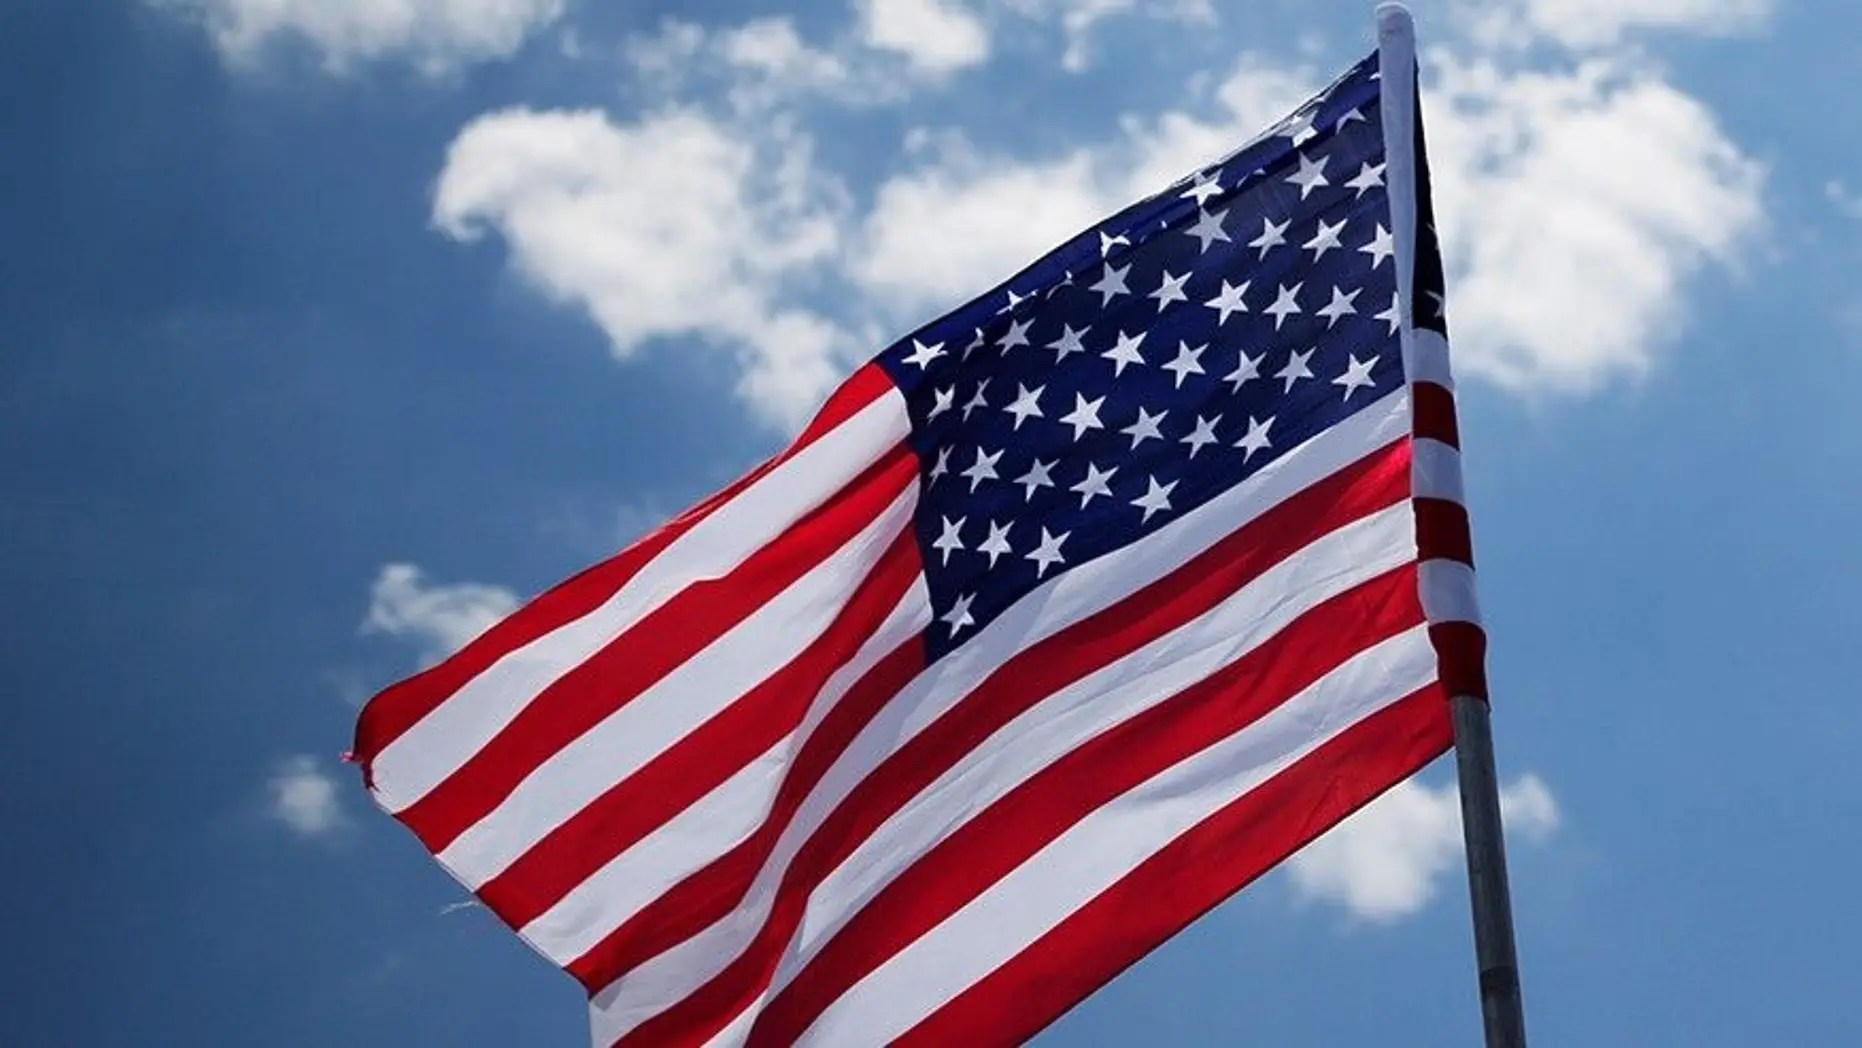 flag day facts 10